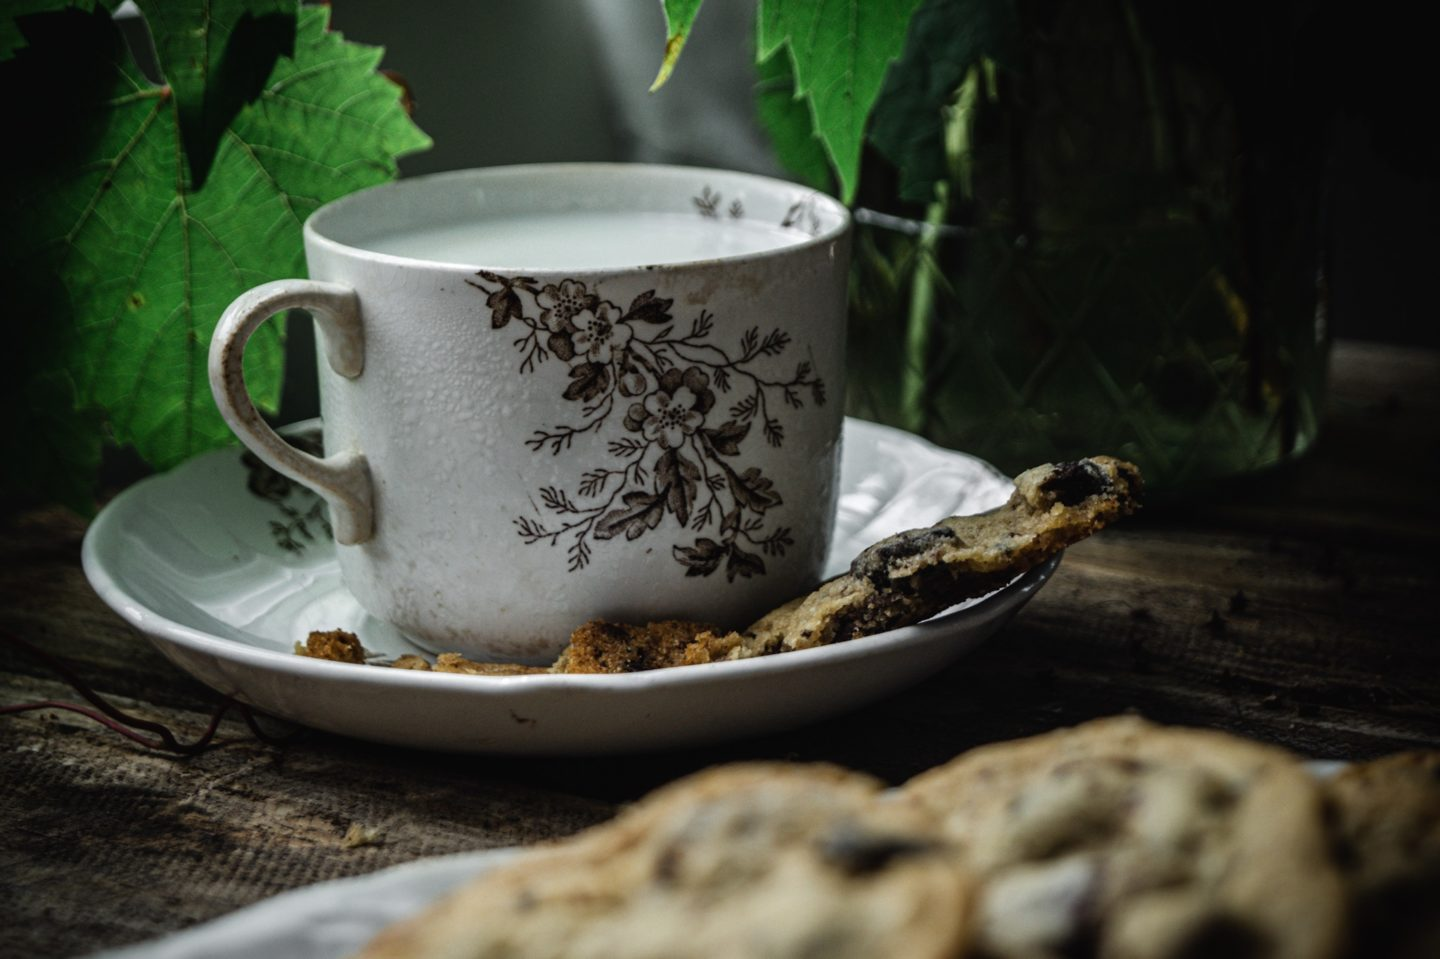 crisp buttery cookies with a chewy soft center